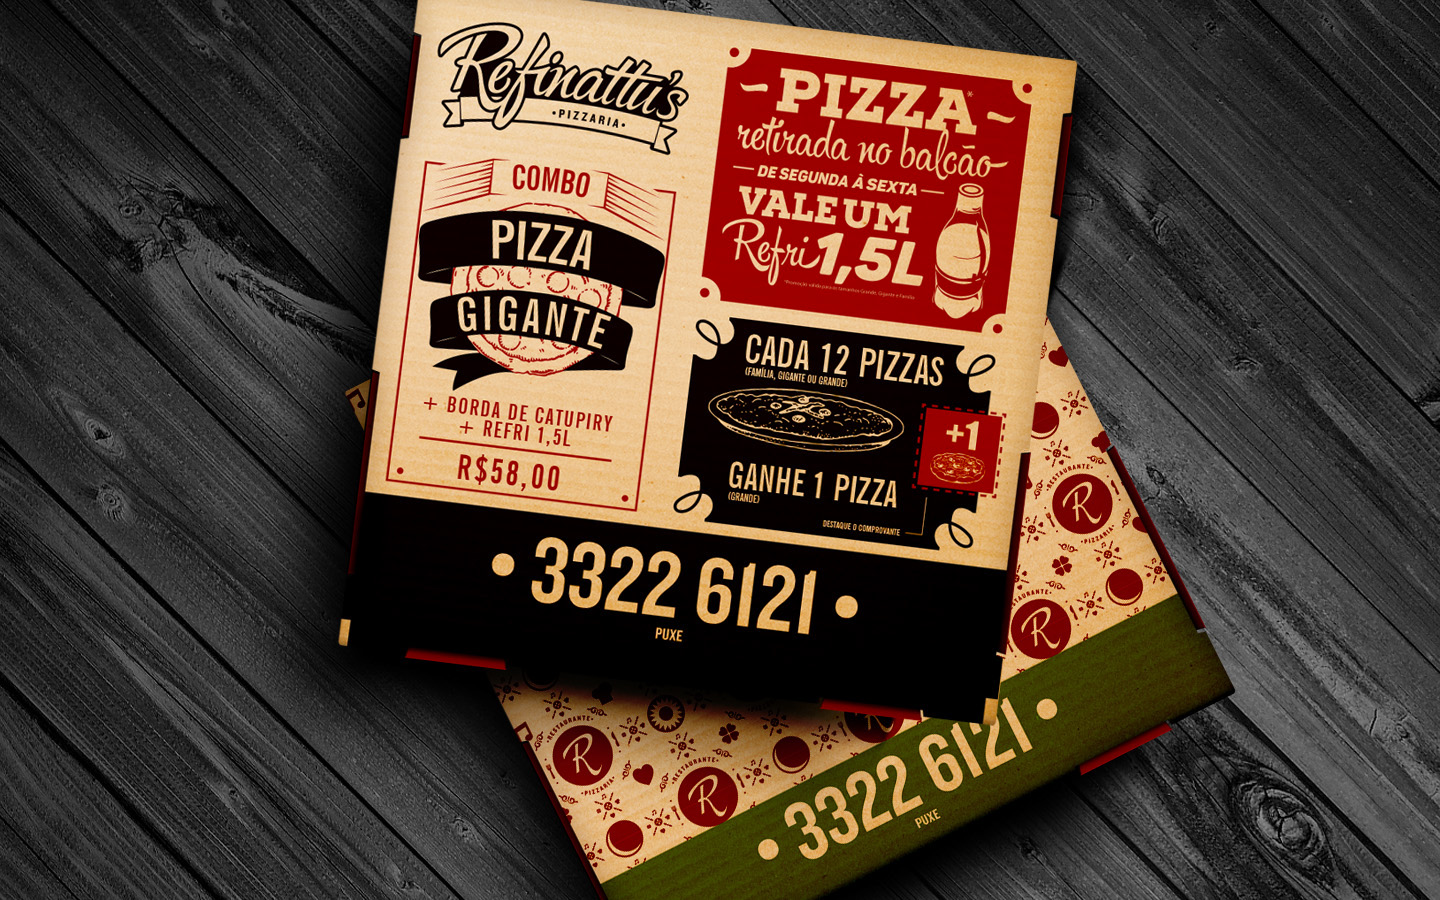 Refinattu's Pizza and Restaurant